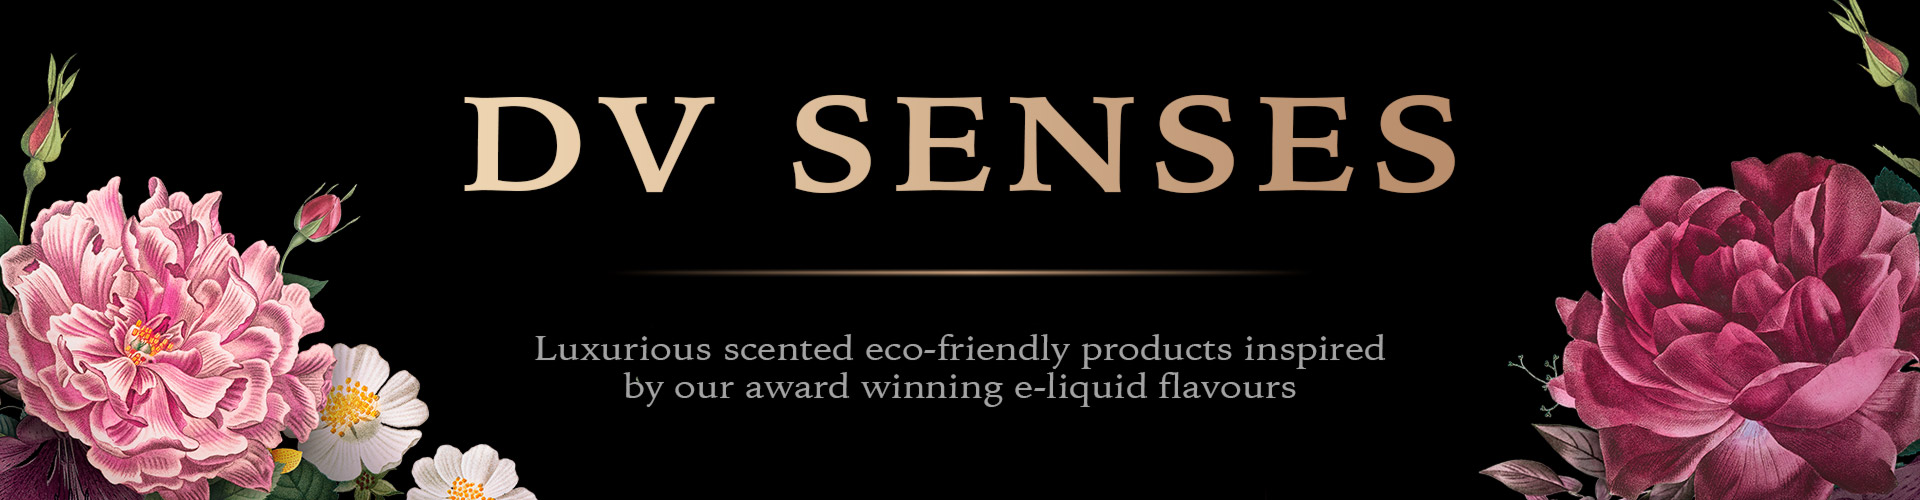 DV-Senses-Aromas-Category-Header